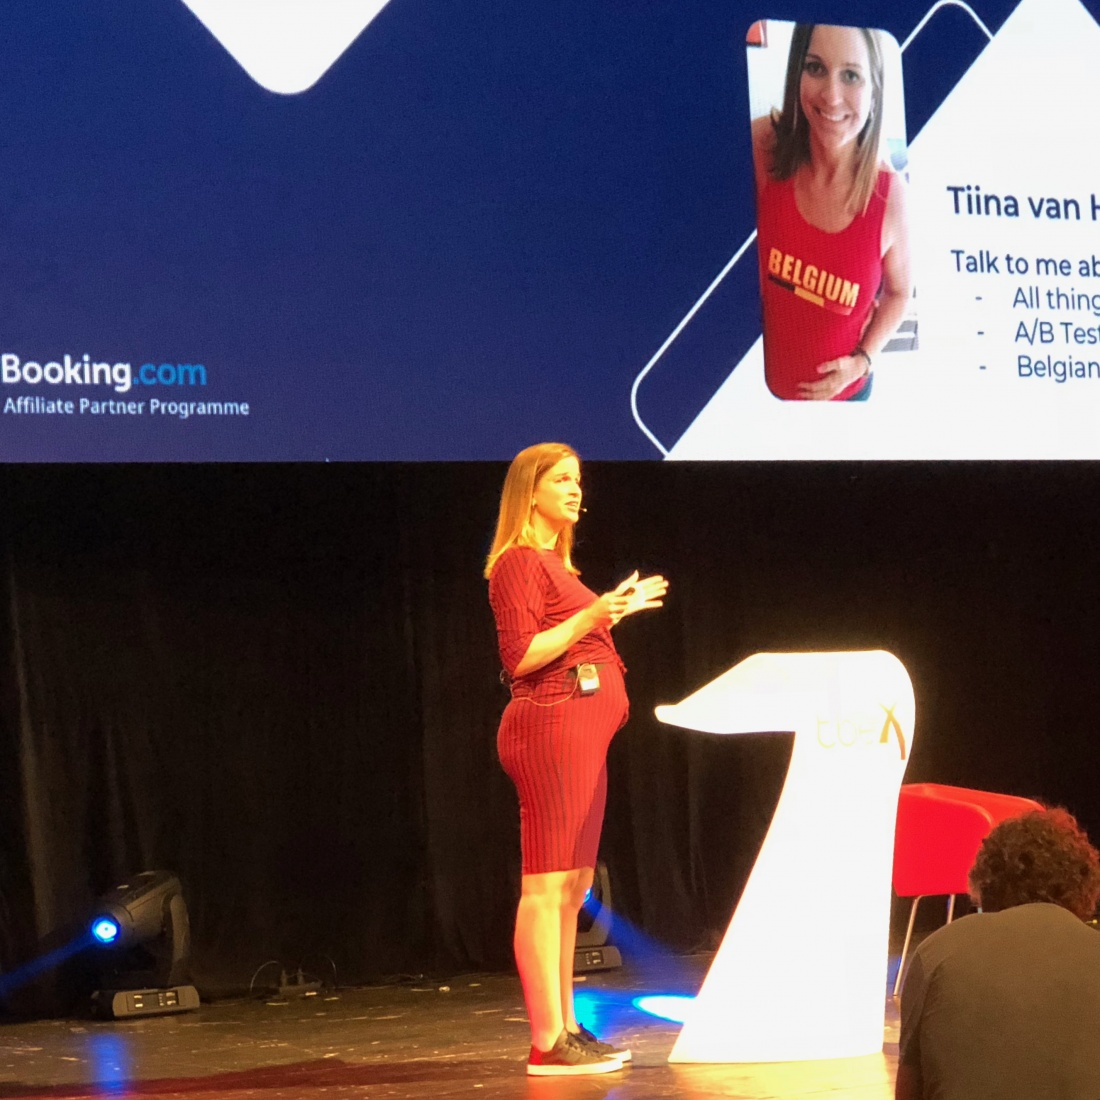 Tiina Van Hecke from Booking.com gives the keynote presentation on world travel trends at TBEX Europe 2018 presentation, in Ostrava, Czech Republic.